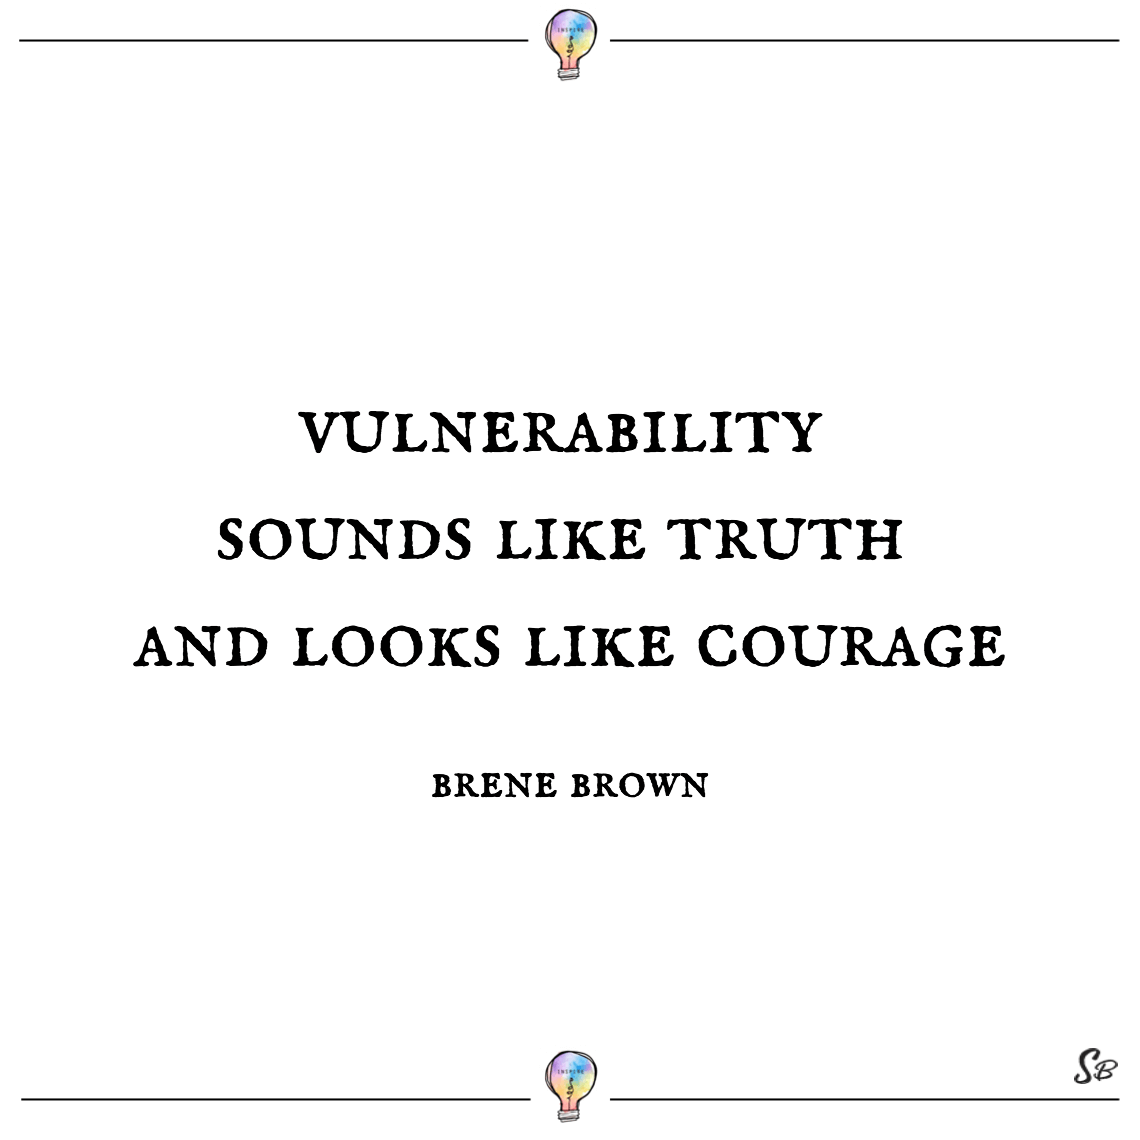 Vulnerability sounds like truth and looks like courage brene brown